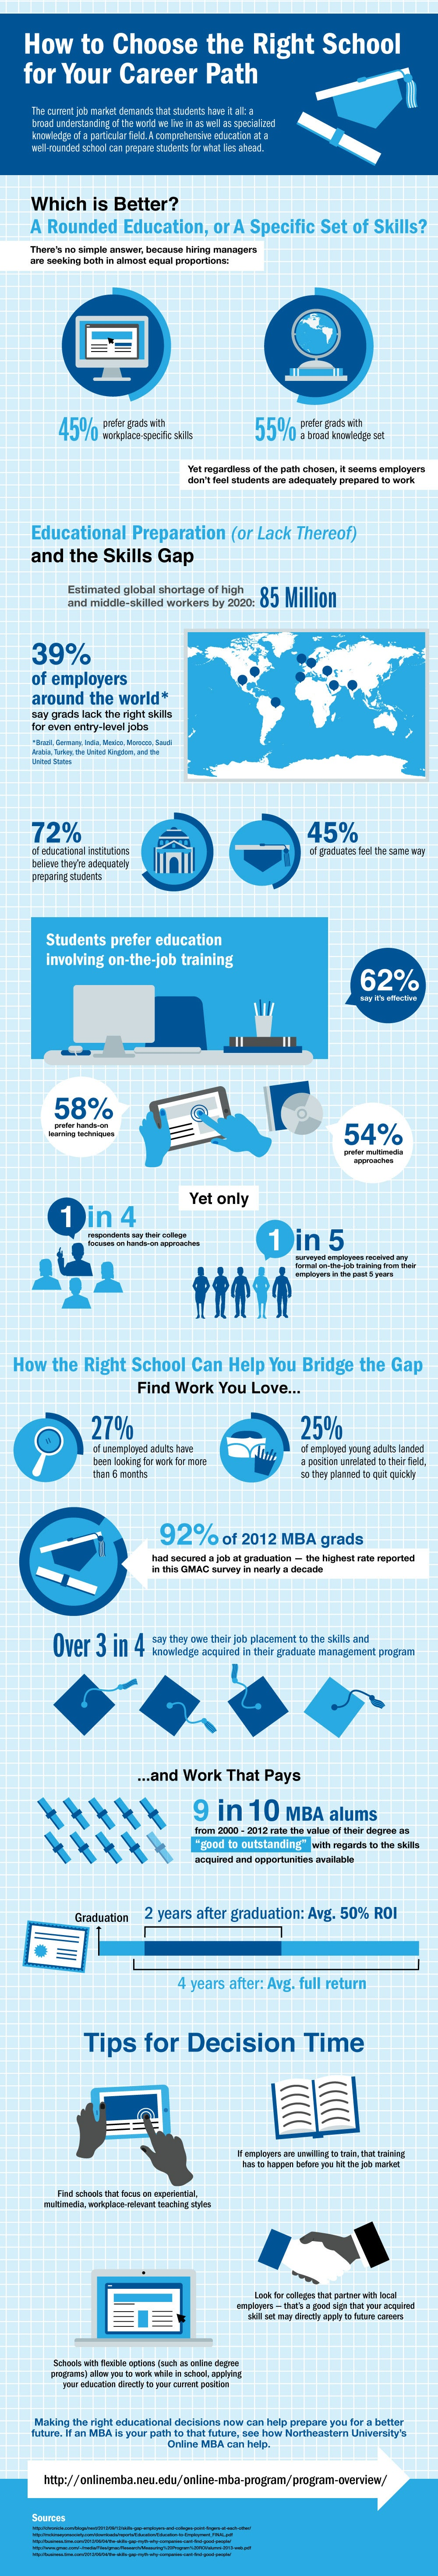 How the Right School Can Help You Thrive in a Lousy Job Market (Infographic)